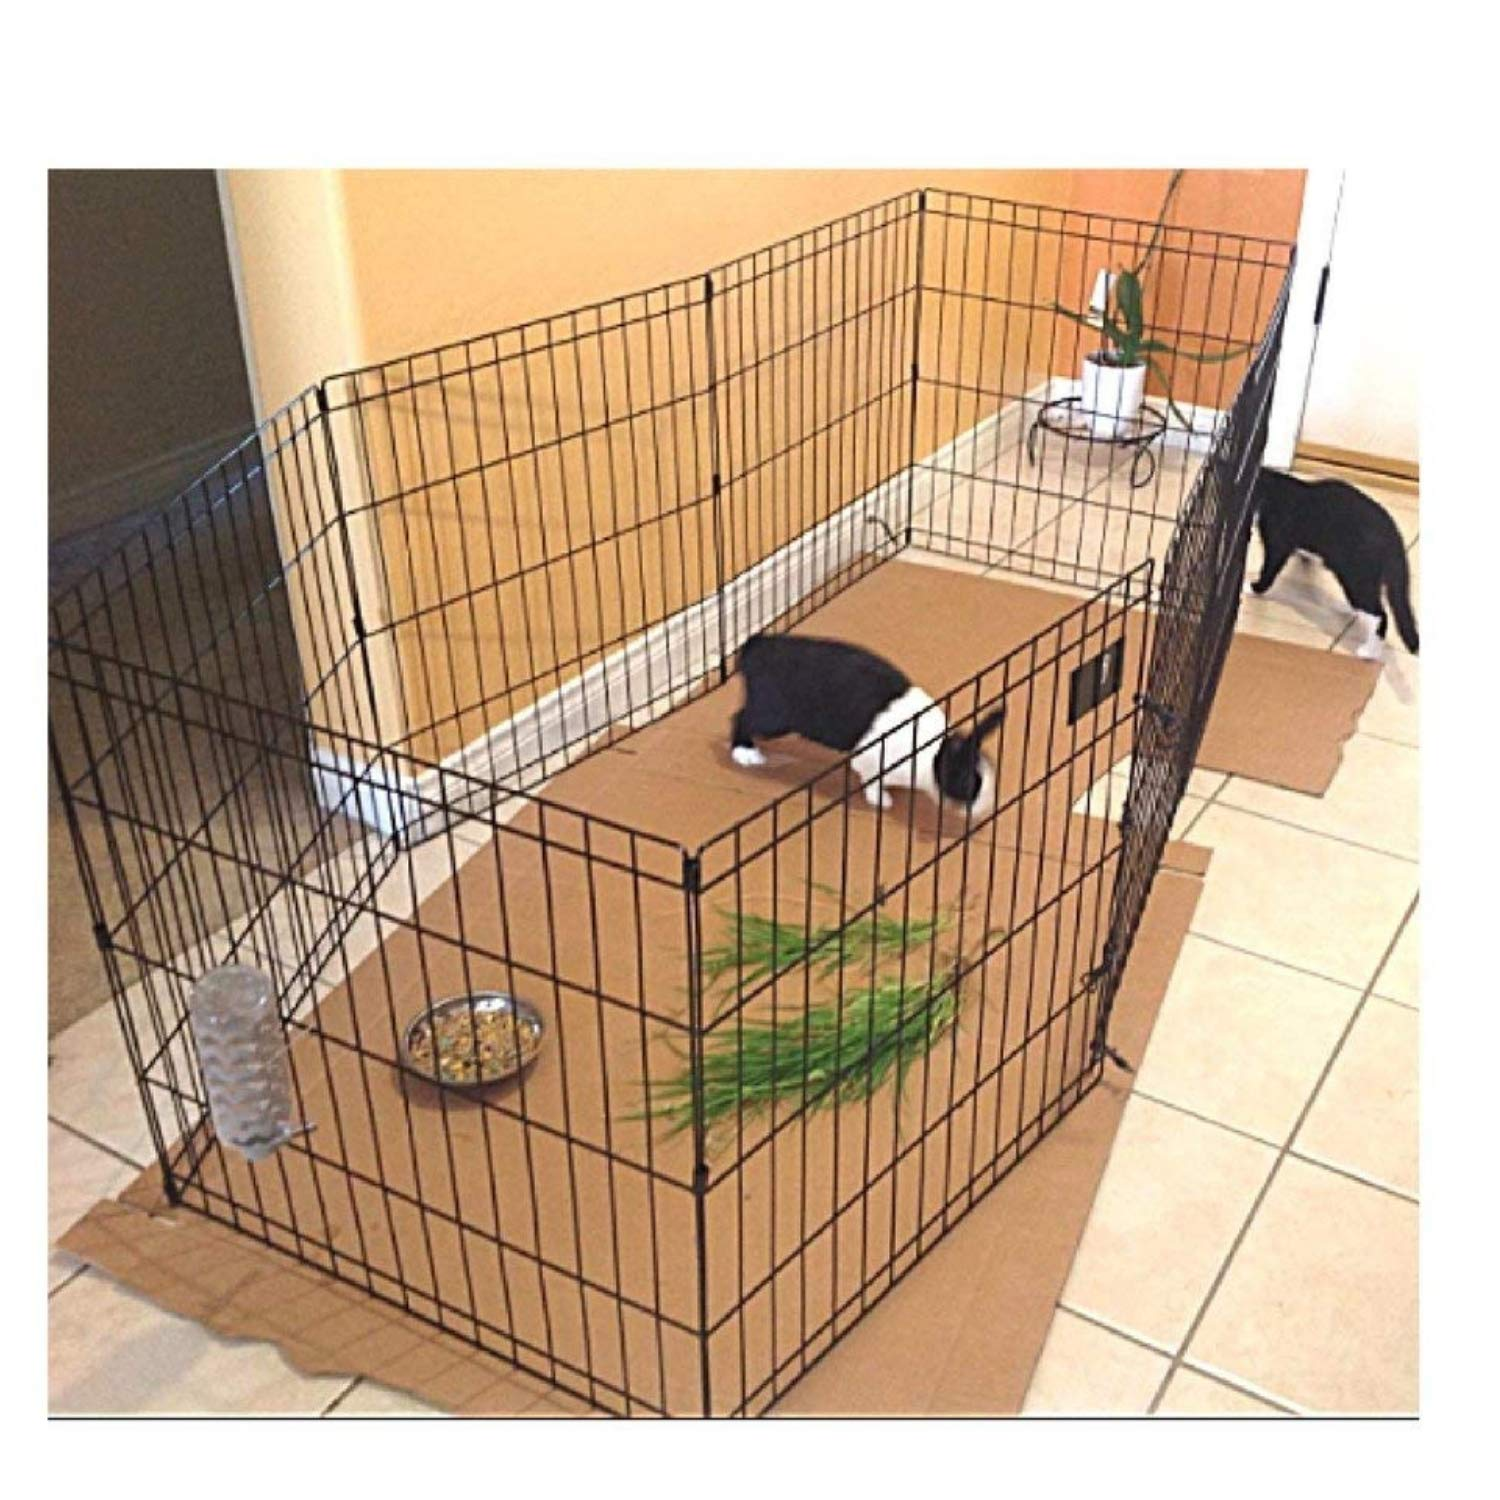 Bunny Rabbit Pen Exercise Indoor 30-Inch with Door House Pet Dog 8 Panel Gate Yard Enclosure X Pen Xpen Fence Playpen & eBook by OISTRIA